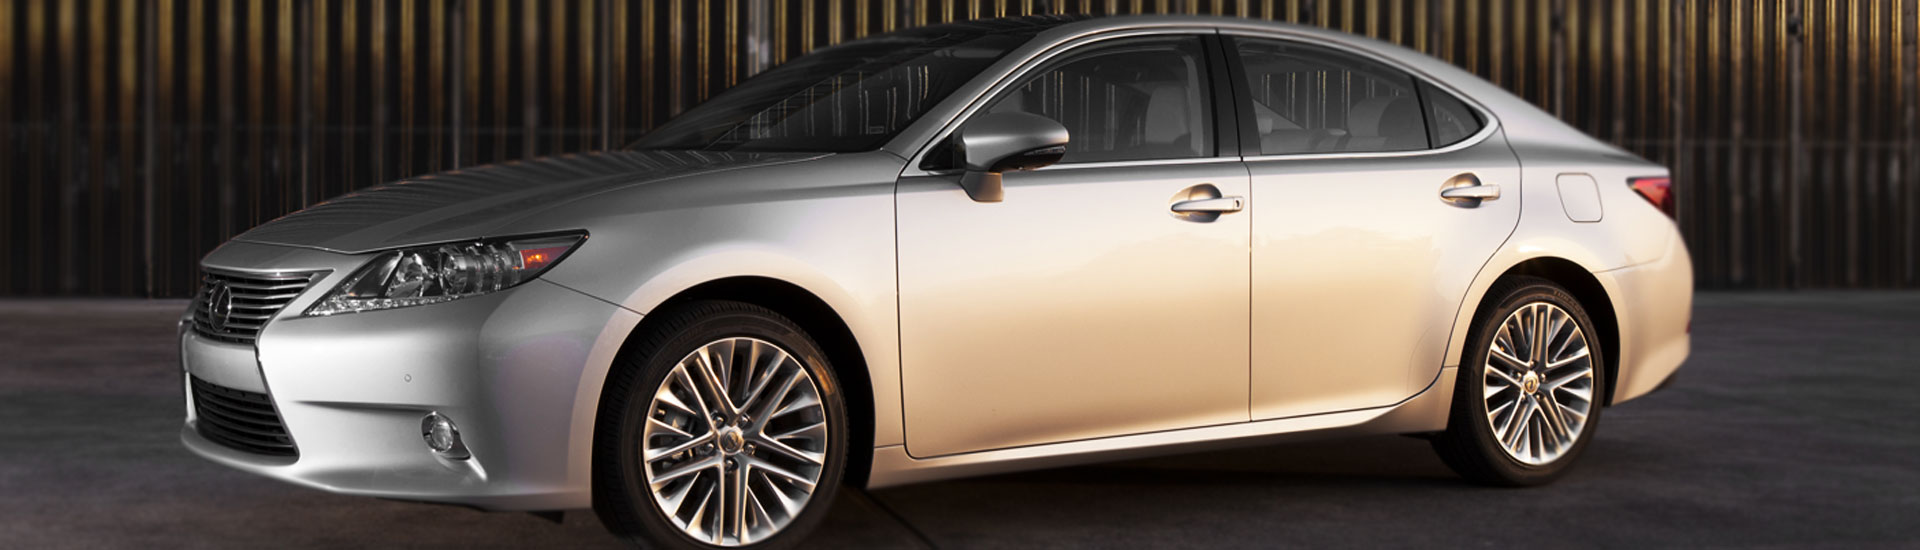 Lexus ES Window Tint